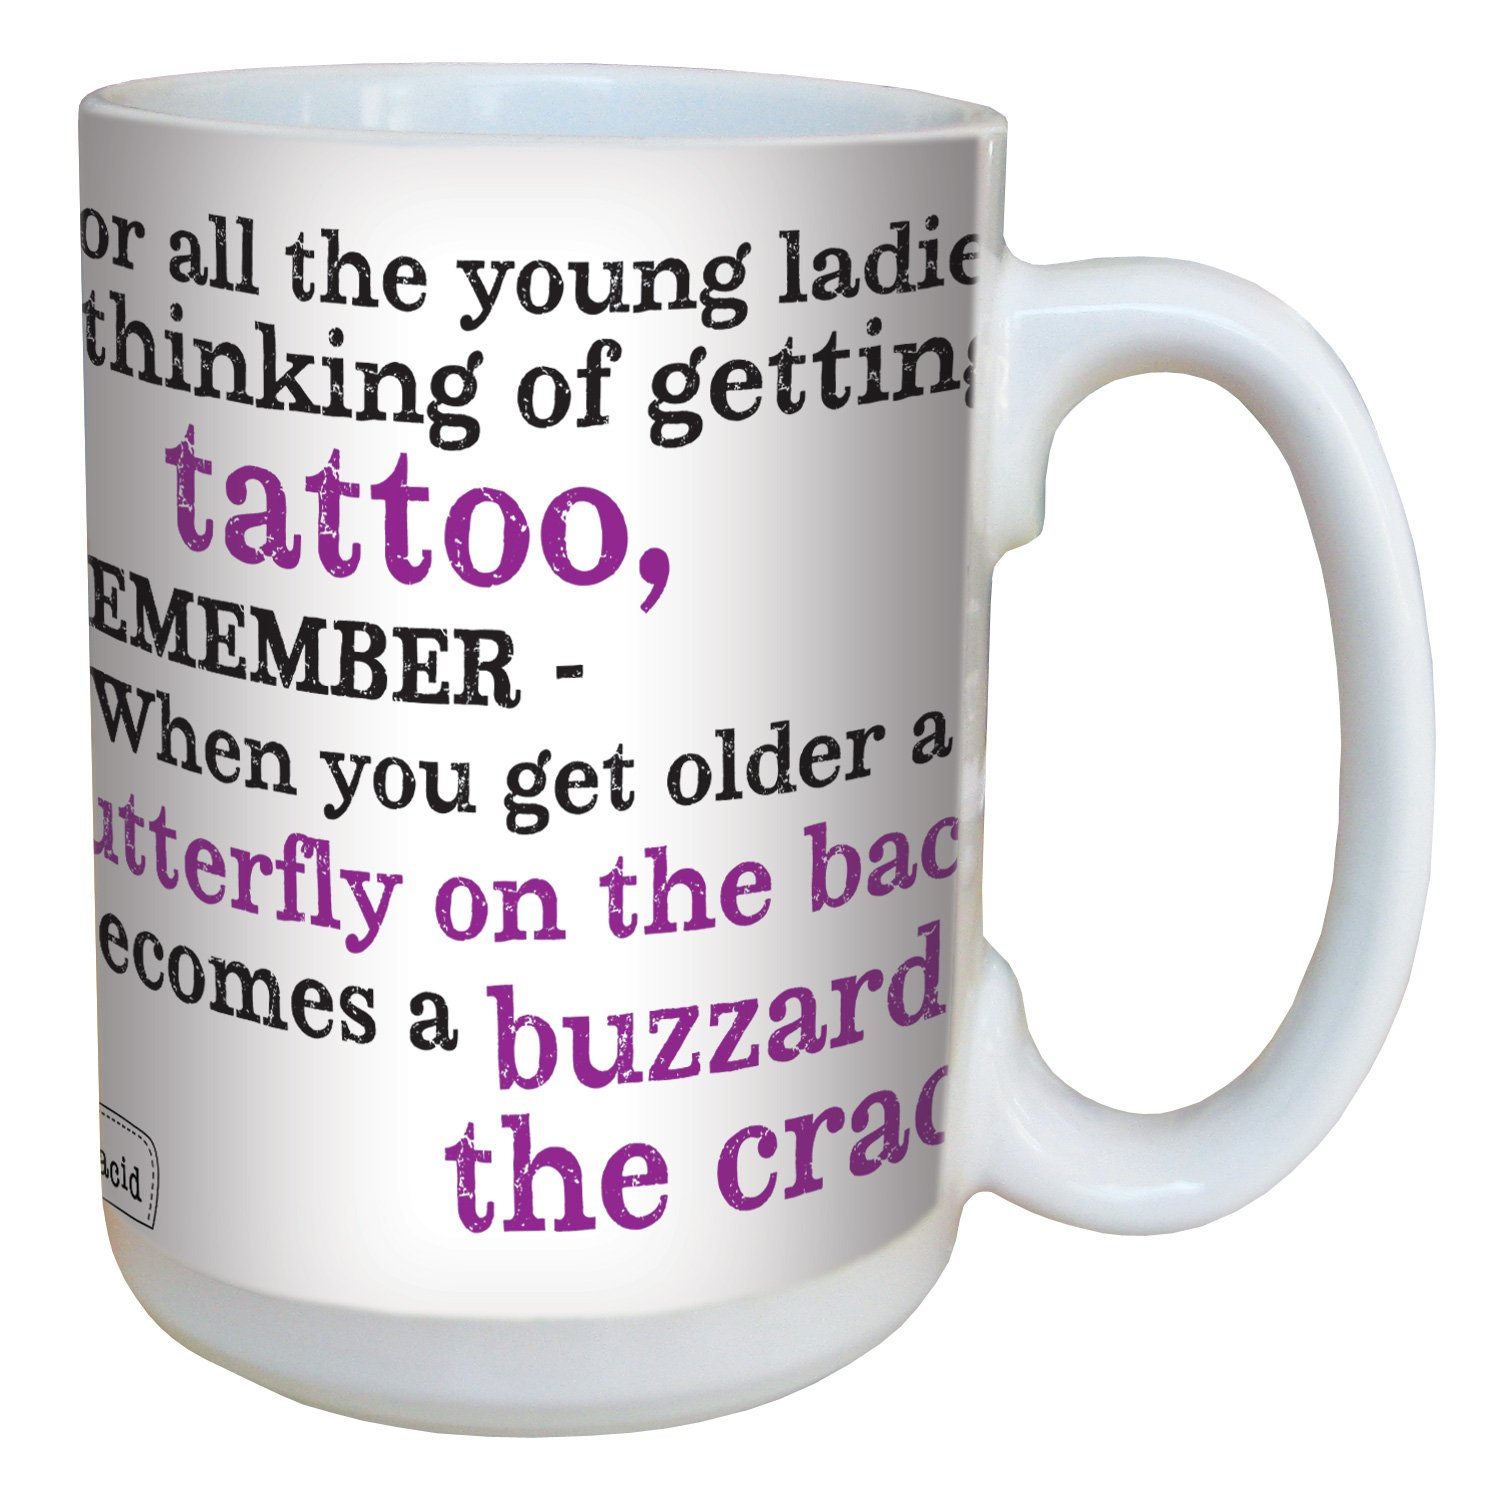 Tree-Free Greetings lm43772 Hilarious Aunty Acid Buzzard Crack Tattoo by The Backland Studio Ceramic Mug, 15-Ounce Tree Free